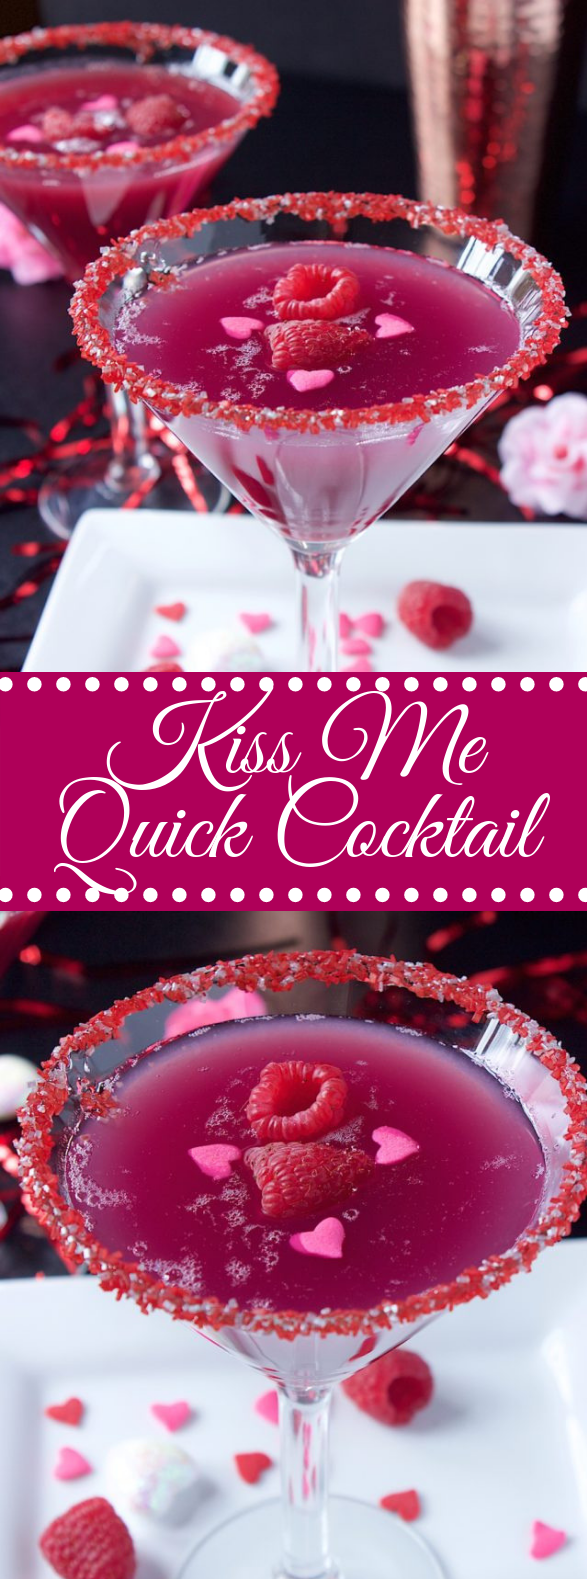 KISS ME QUICK COCKTAIL #drinks #valentineday